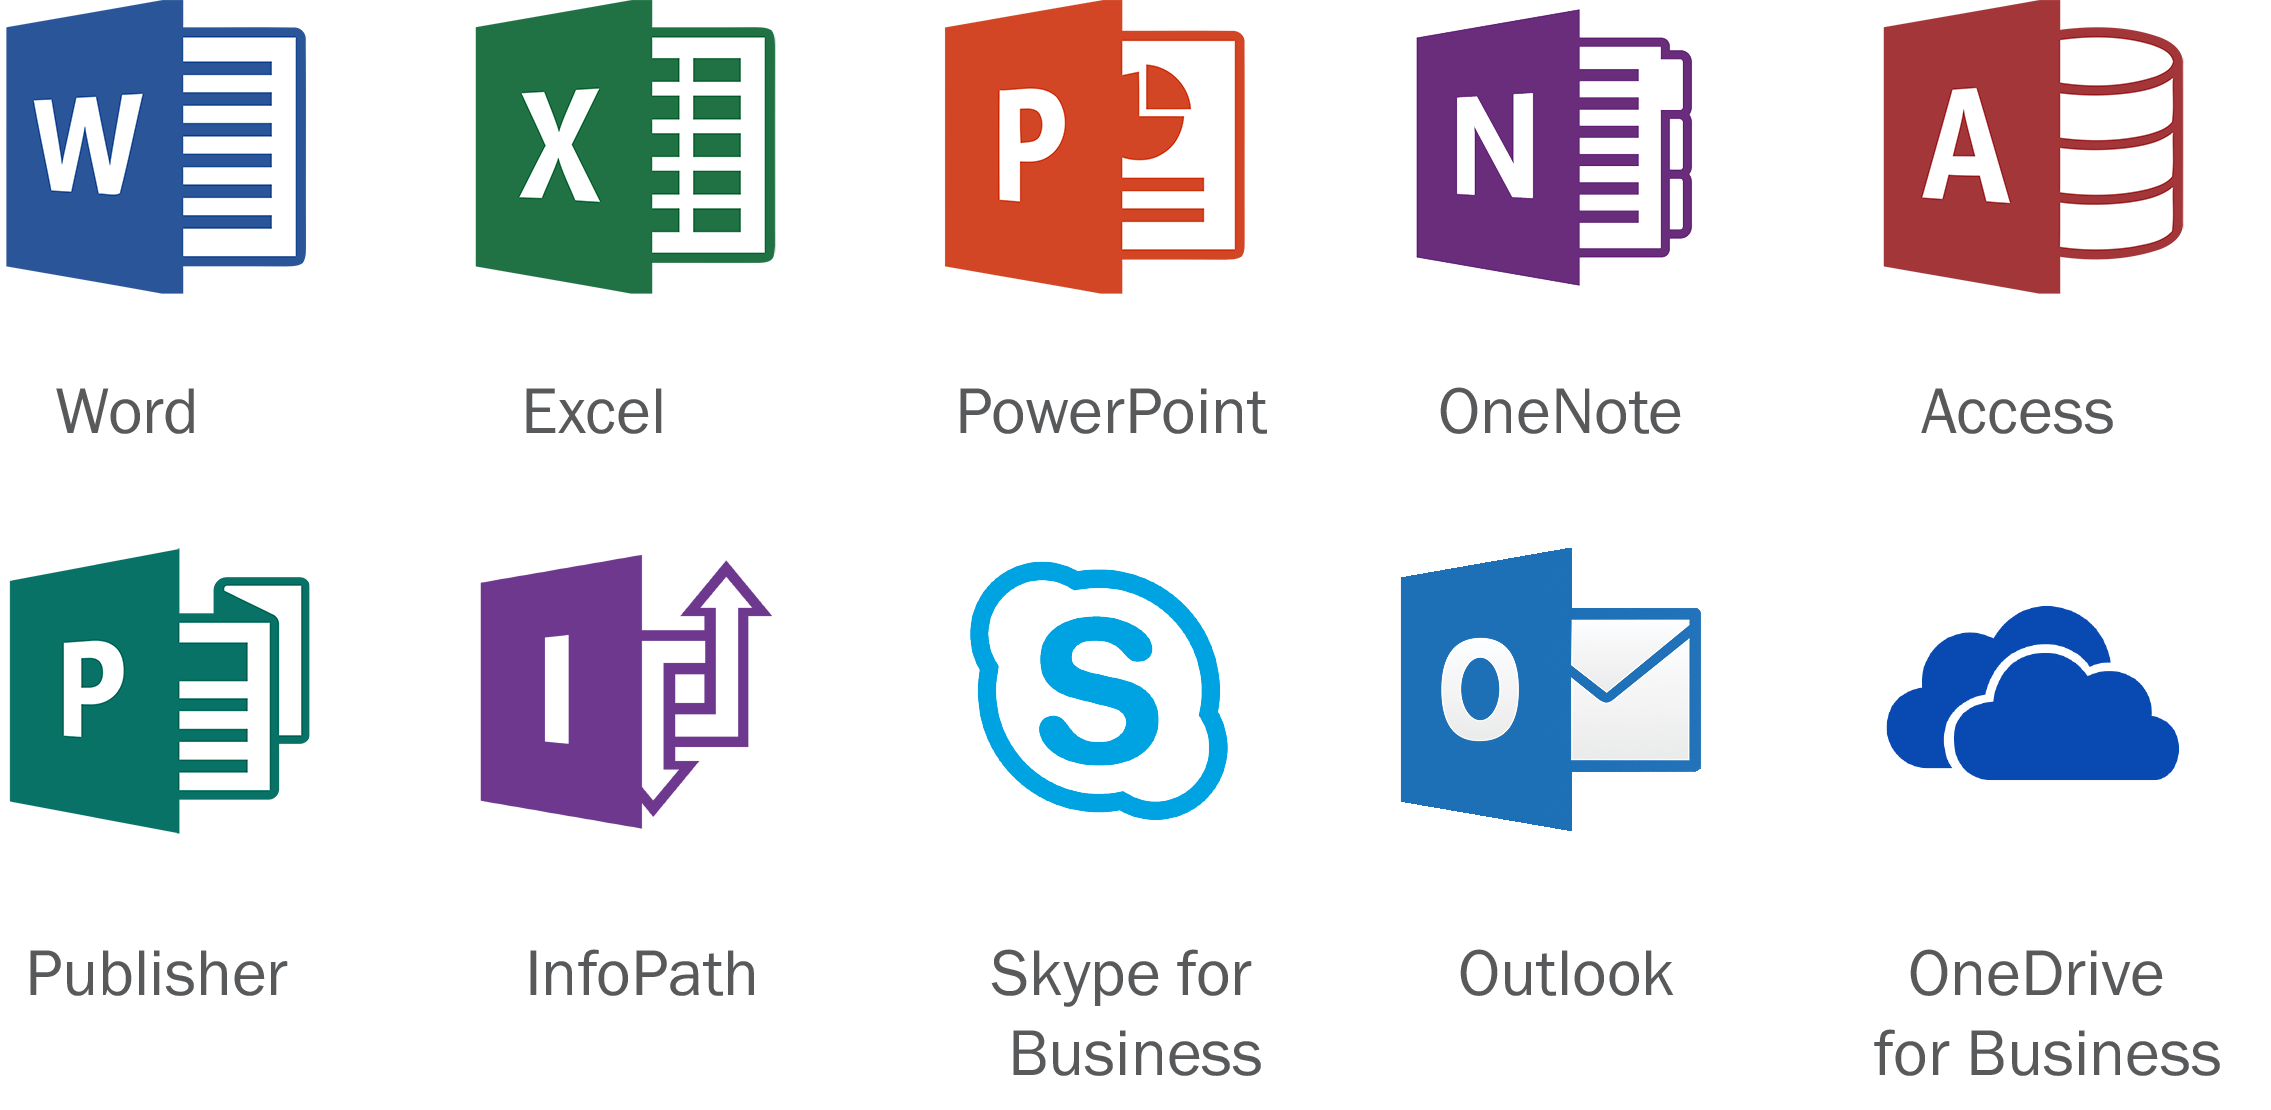 13 office 365 icon images